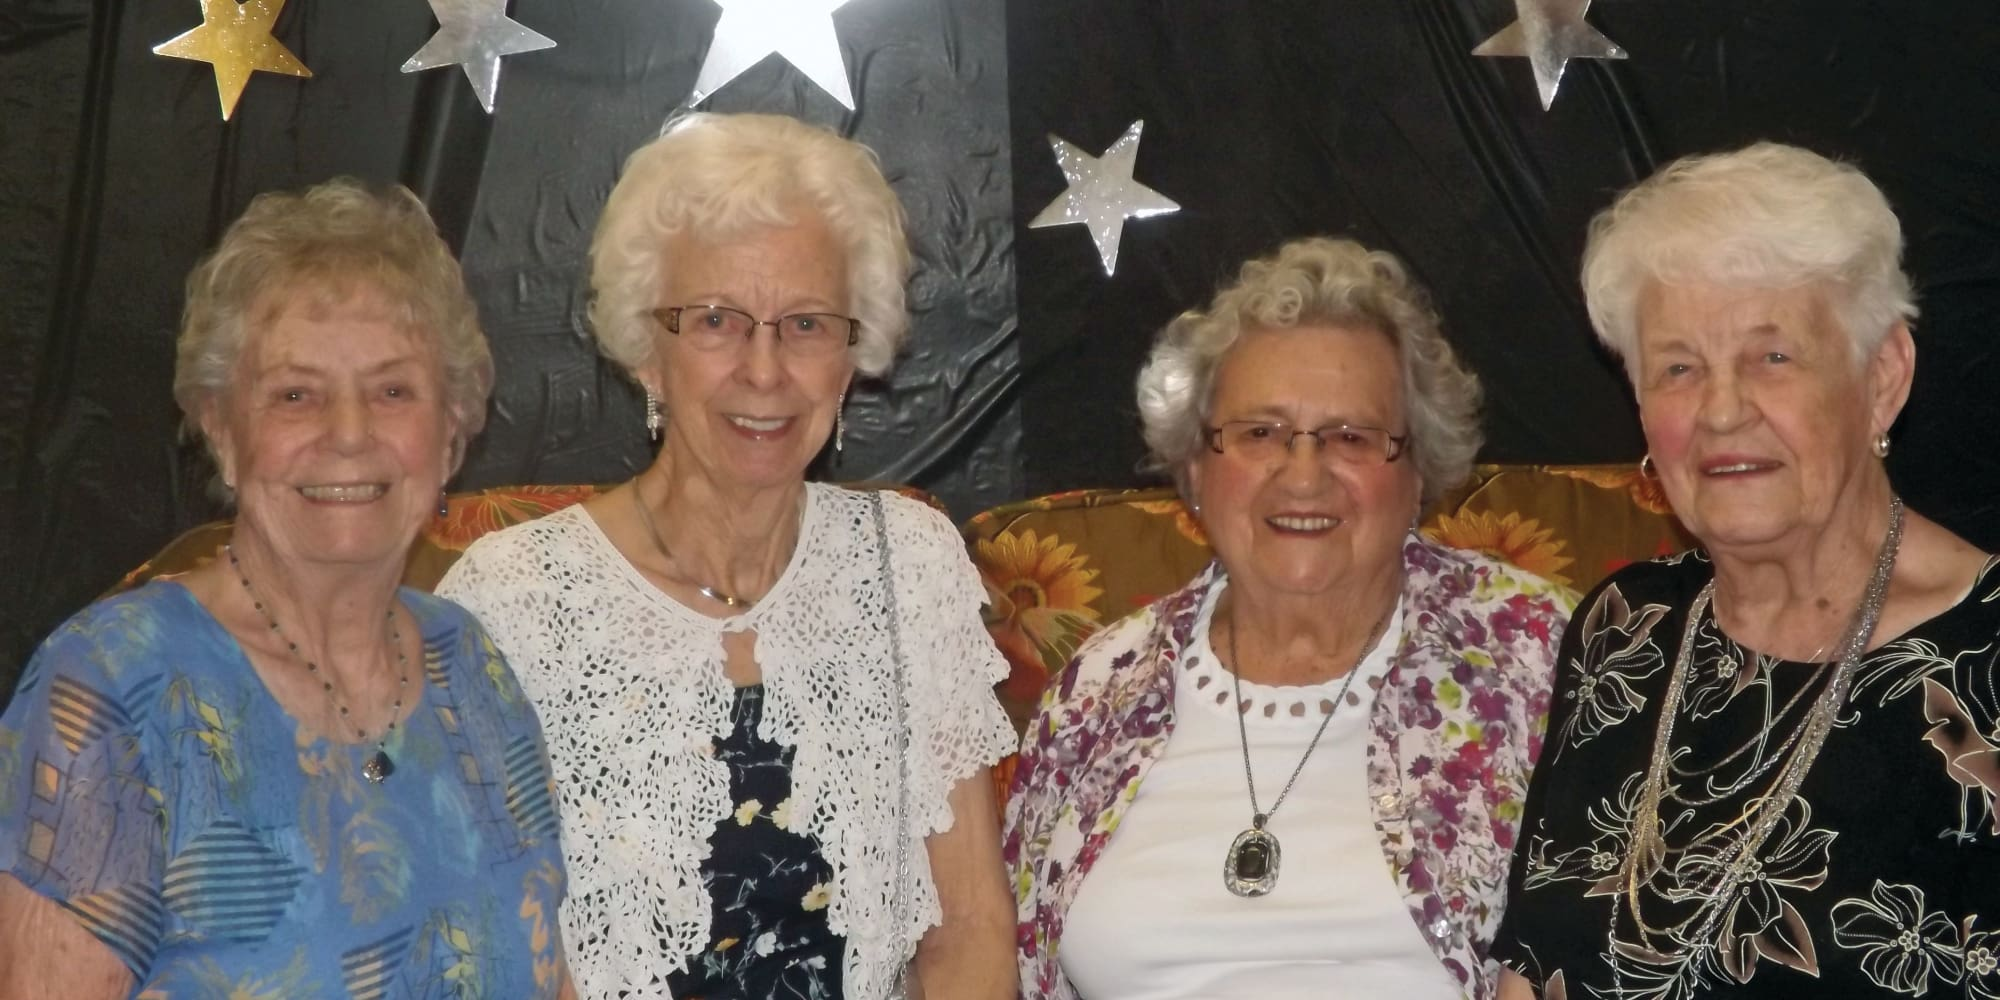 Four residents in front of a backdrop at The Palms at La Quinta Assisted Living and Memory Care in La Quinta, California